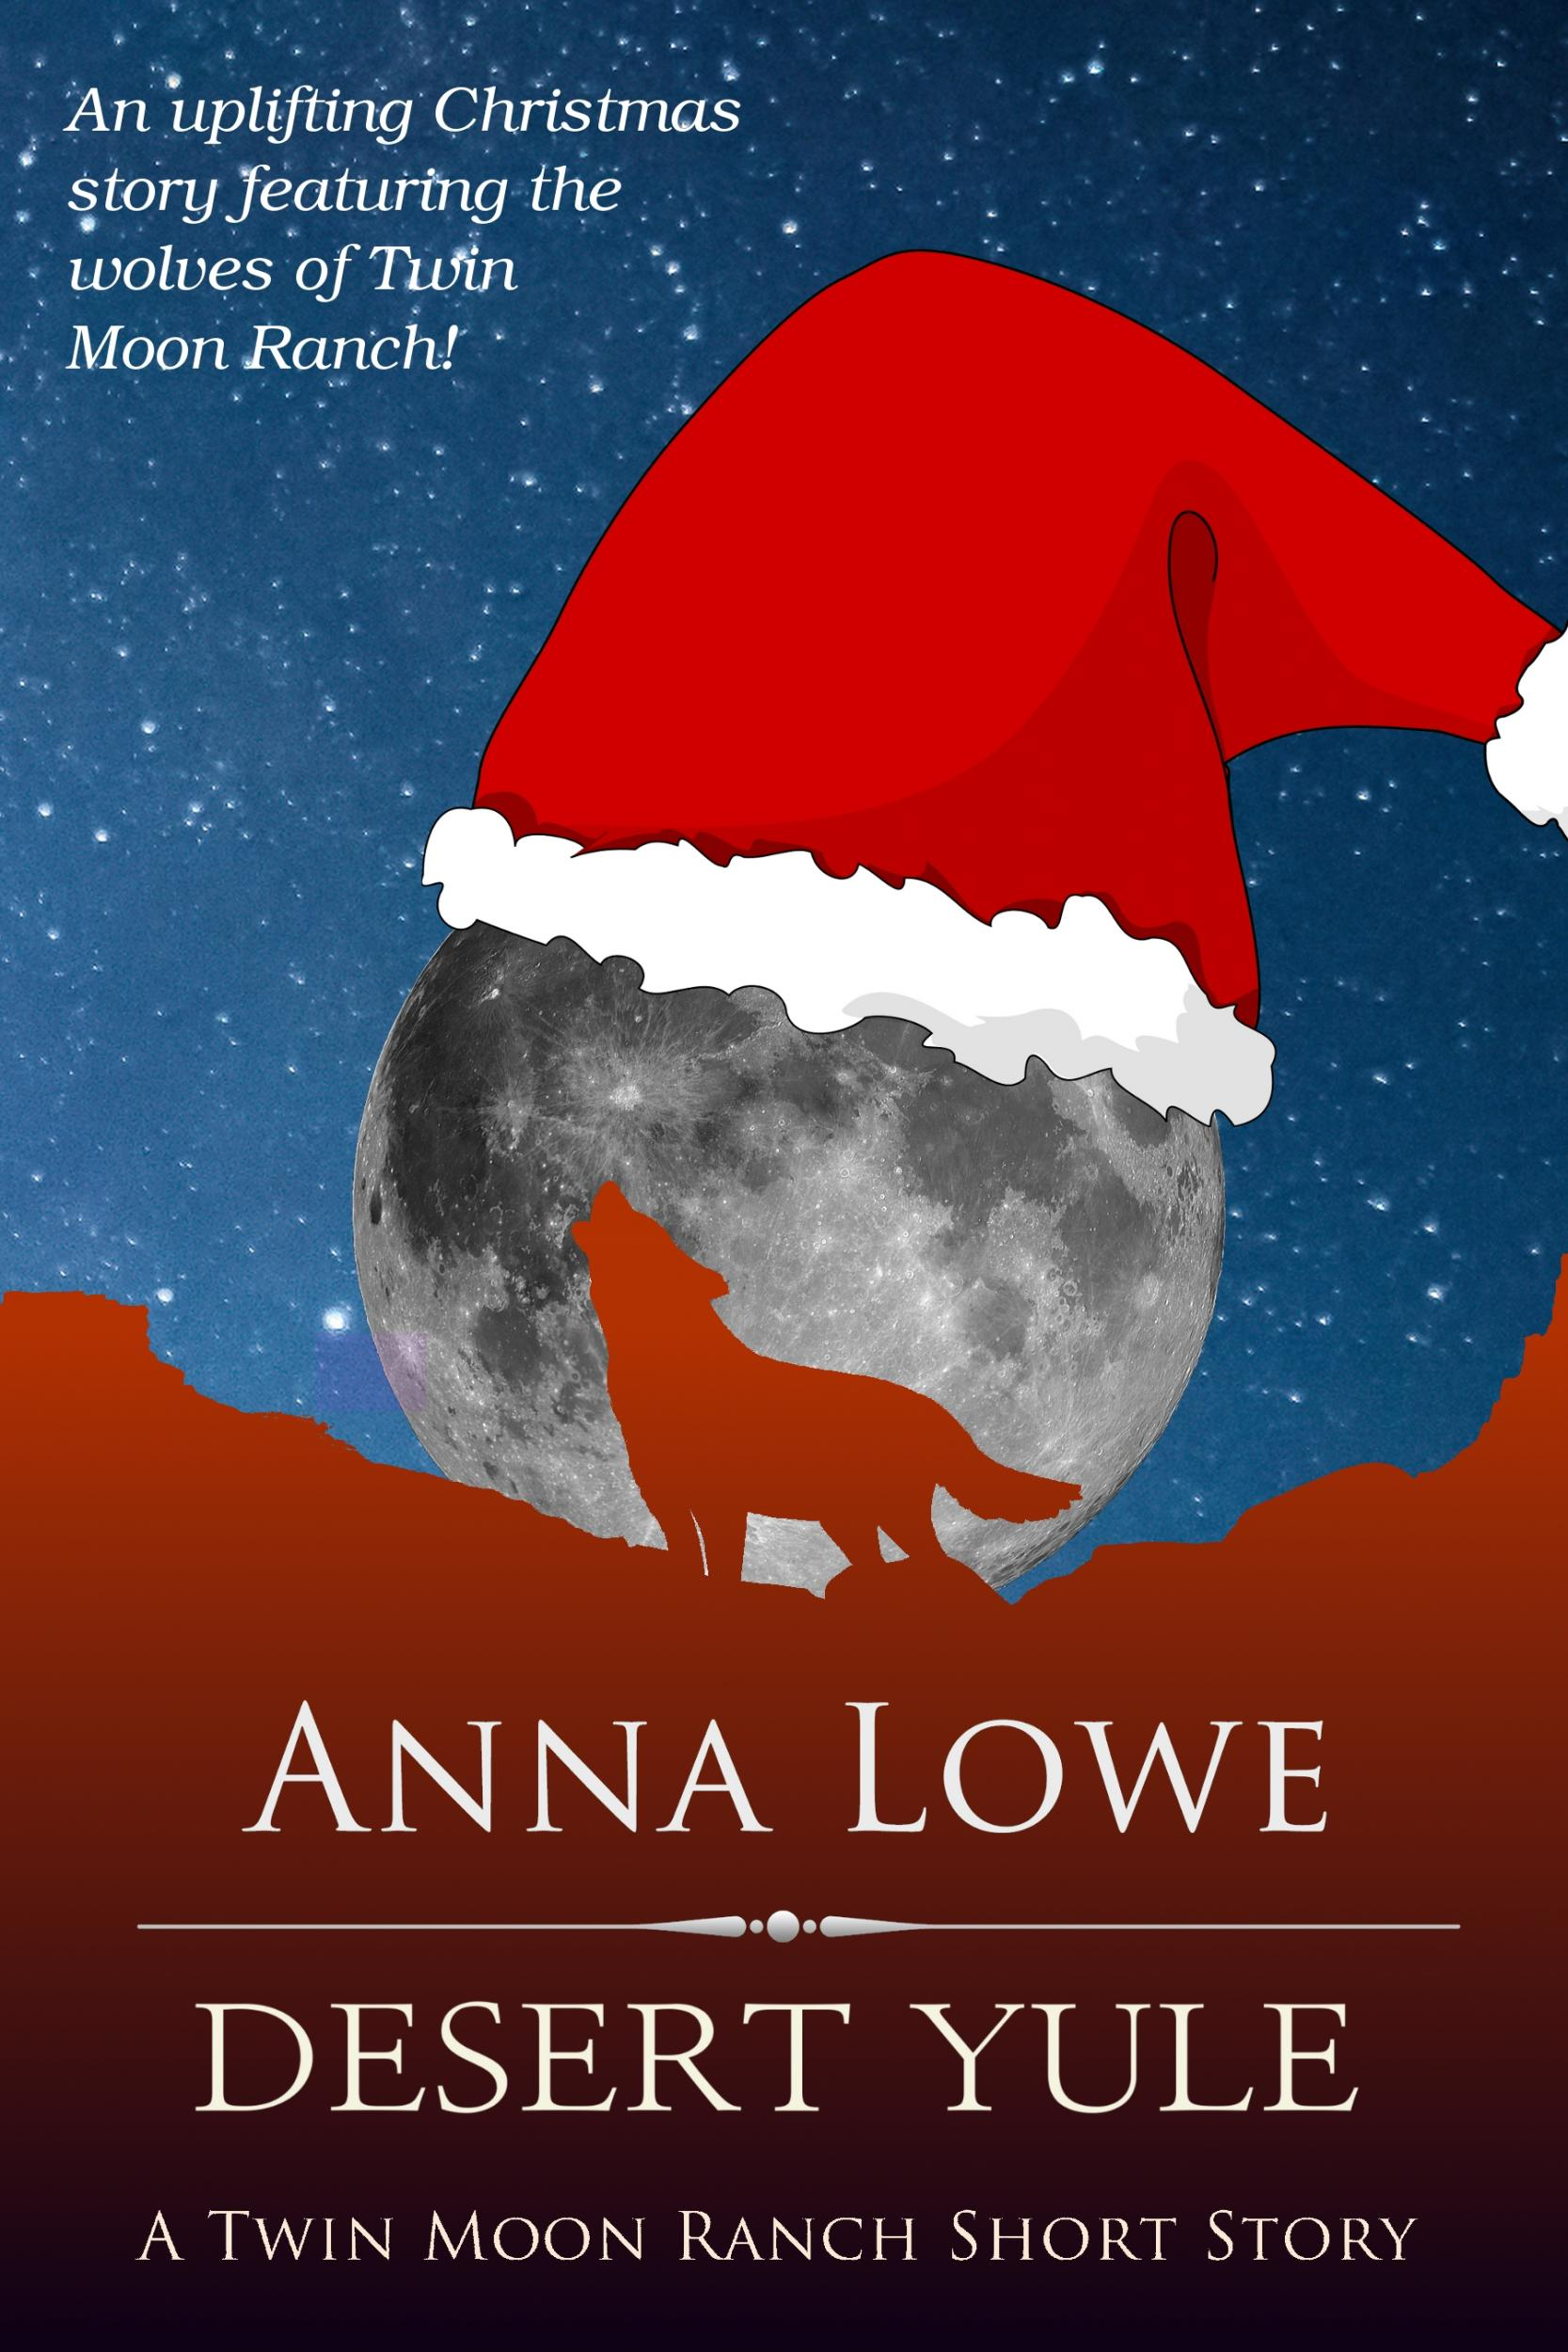 Desert Yule Book Cover